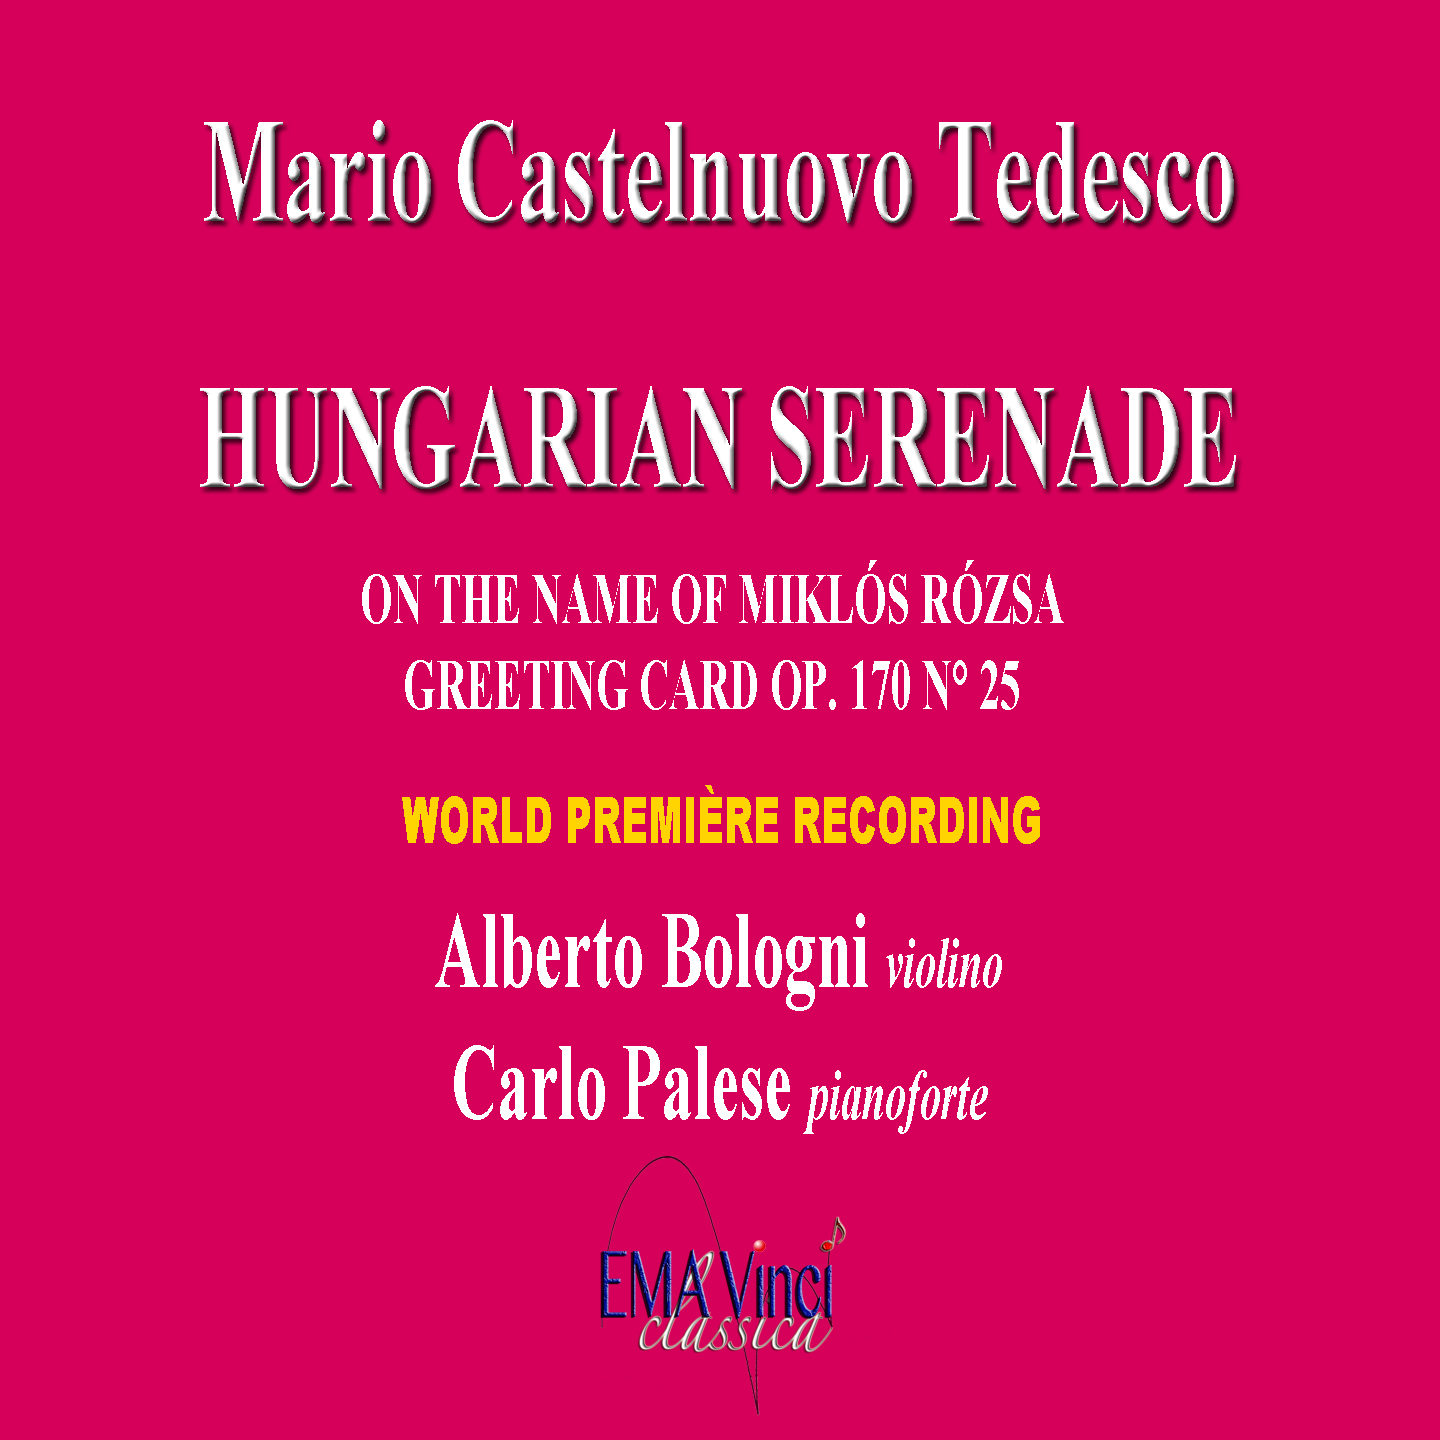 Greeting Cards, Op. 170: No. 25, Hungarian serenade on the Name of Miklós Rózsa, for Violin and Piano World Premiere Recording Greeting Cards, Op. 170: No. 25, Hungarian serenade on the Name of Miklós Rózsa, for Violin and Piano World Premiere Recording